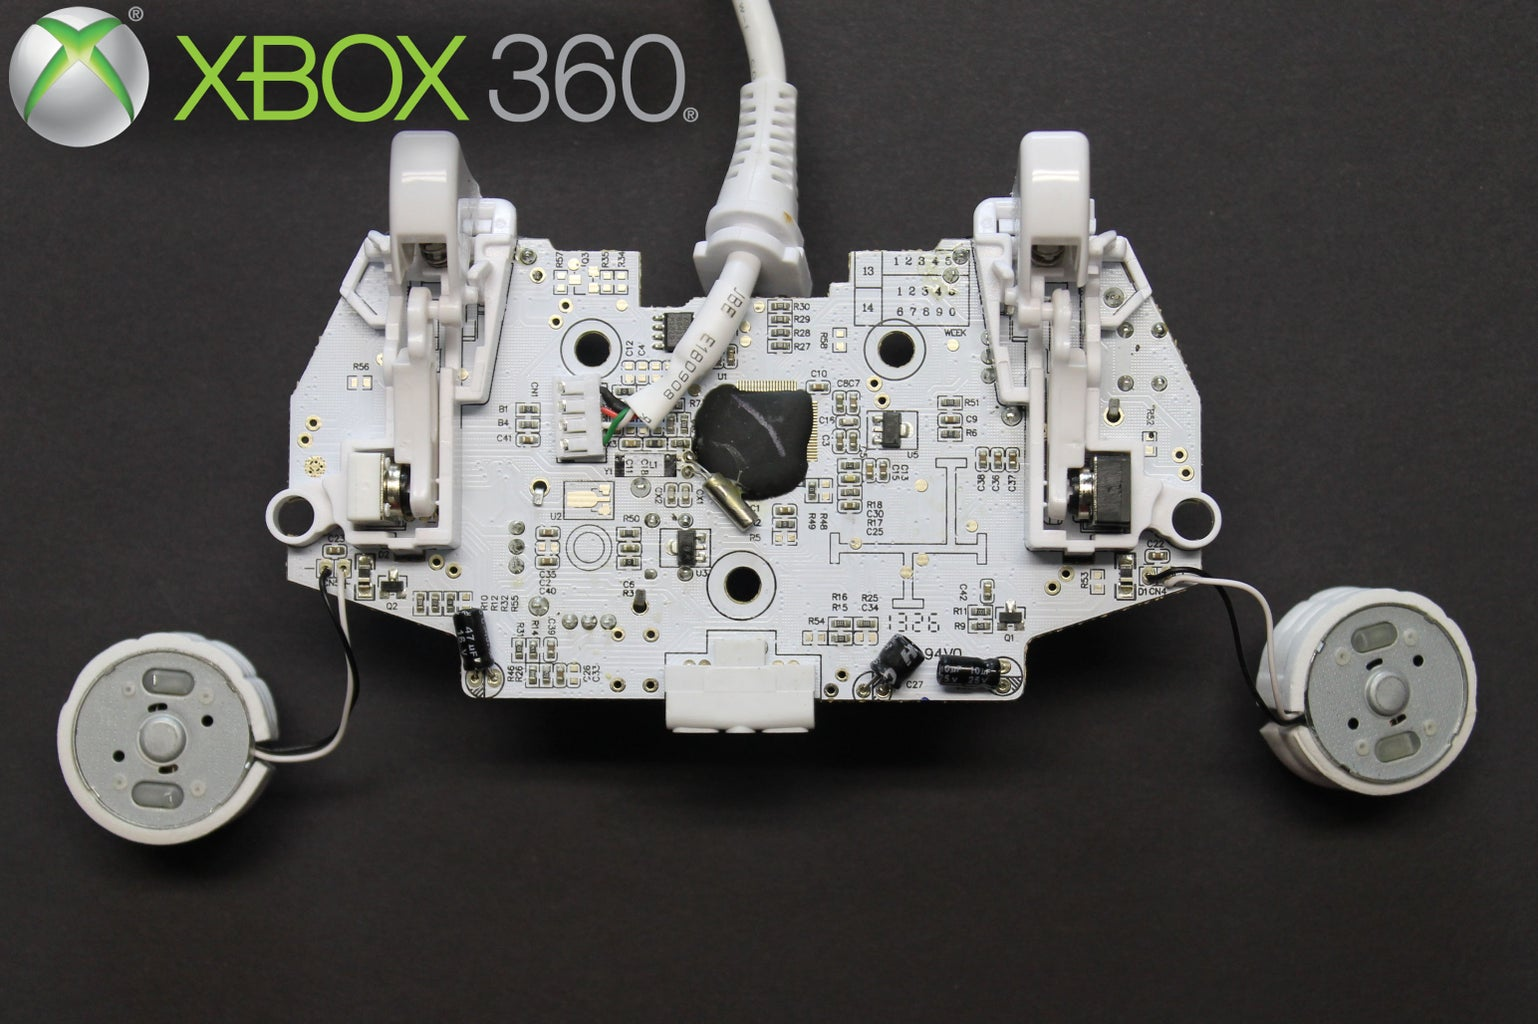 Anatomy of a Controller